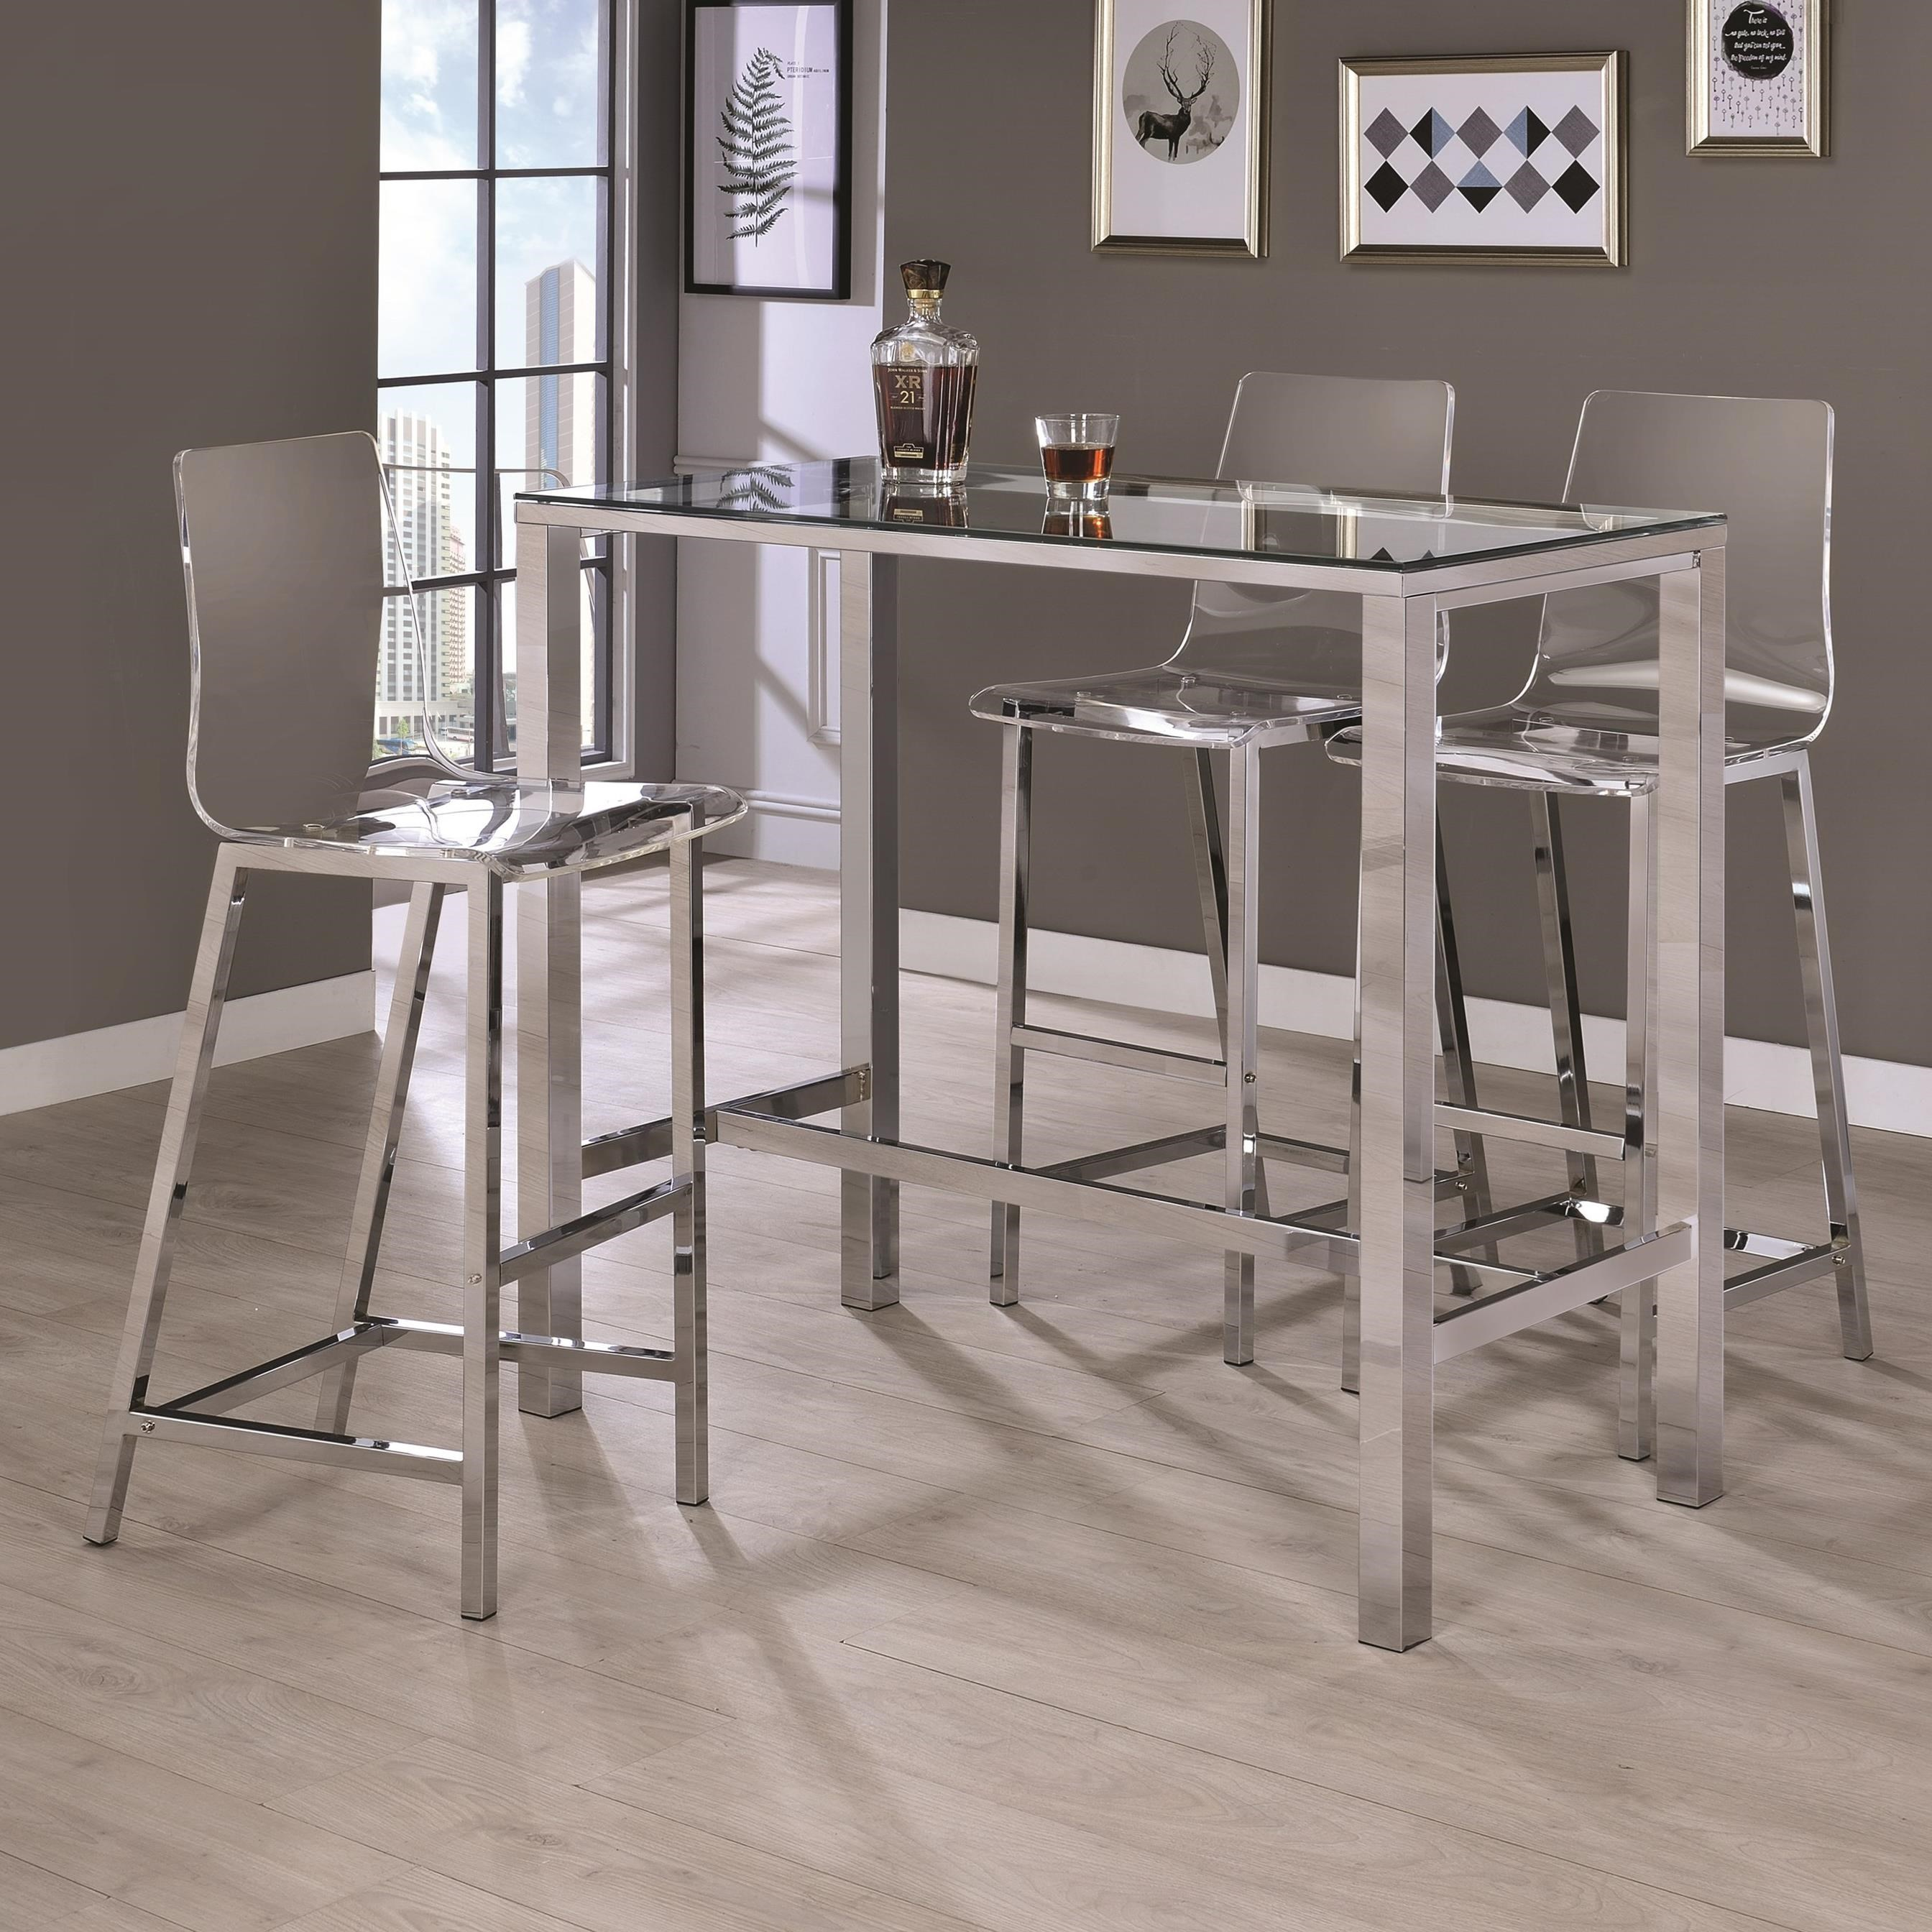 Bar Units and Bar Tables Bar Table and Stool Set by Coaster at Northeast Factory Direct